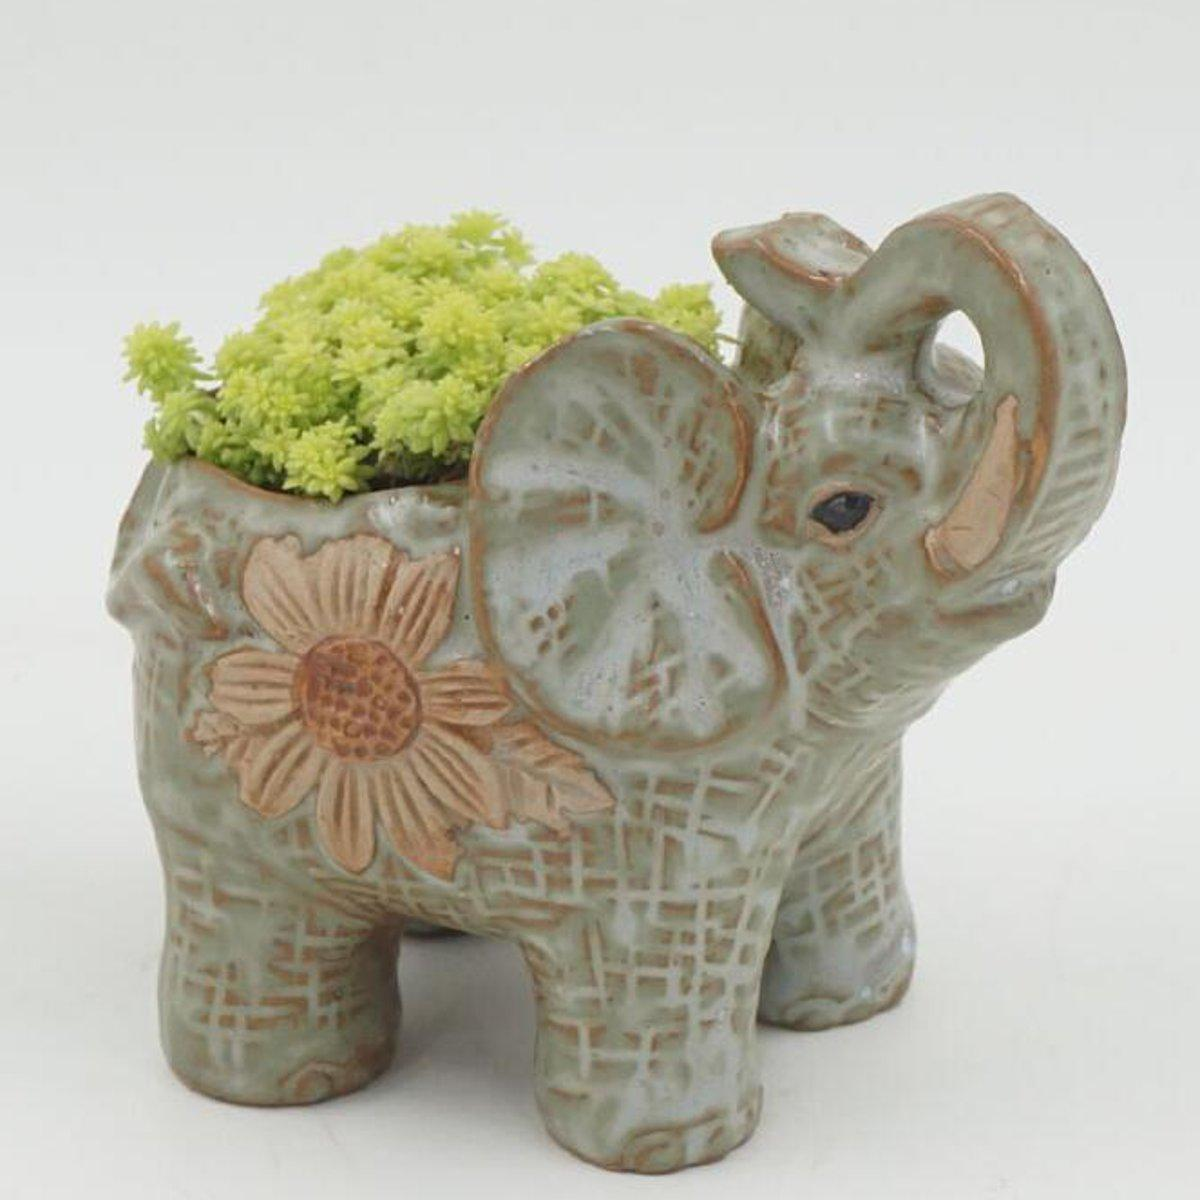 2019 Flower Pots Vintage Mini Ceramic Elephant Planter Cacti